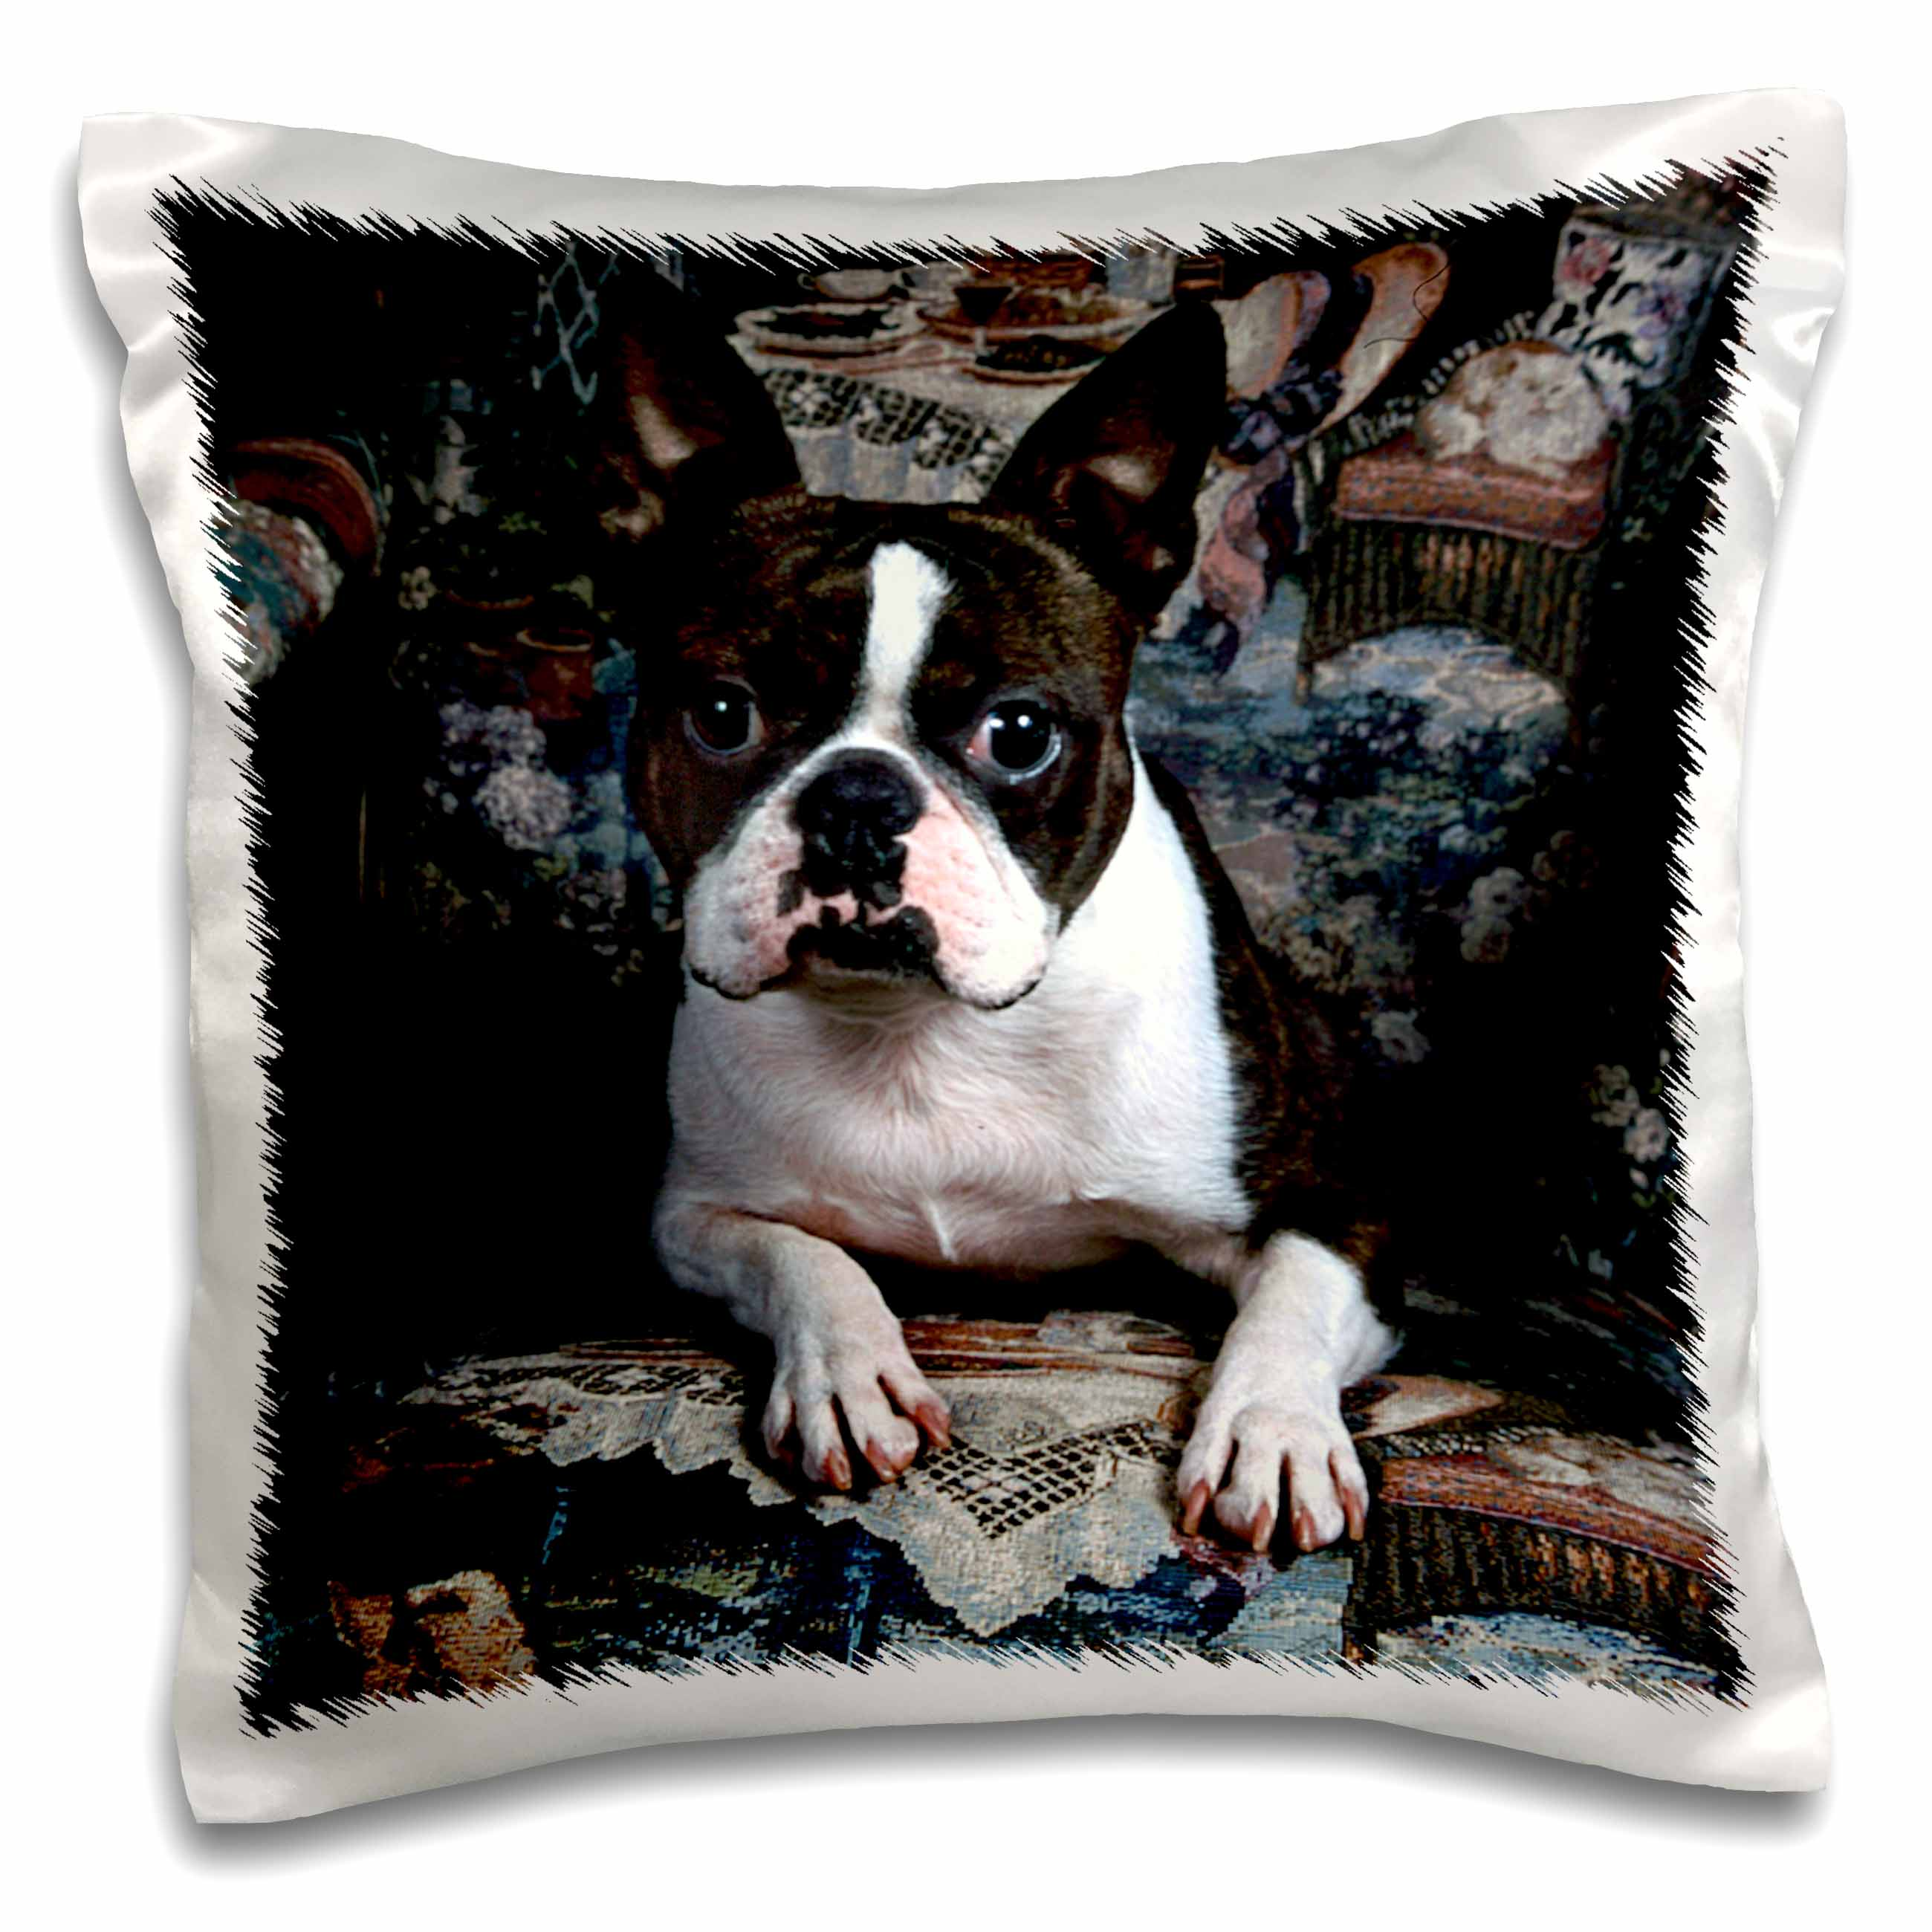 3dRose Boston Terrier Philippe, Pillow Case, 16 by 16-inch